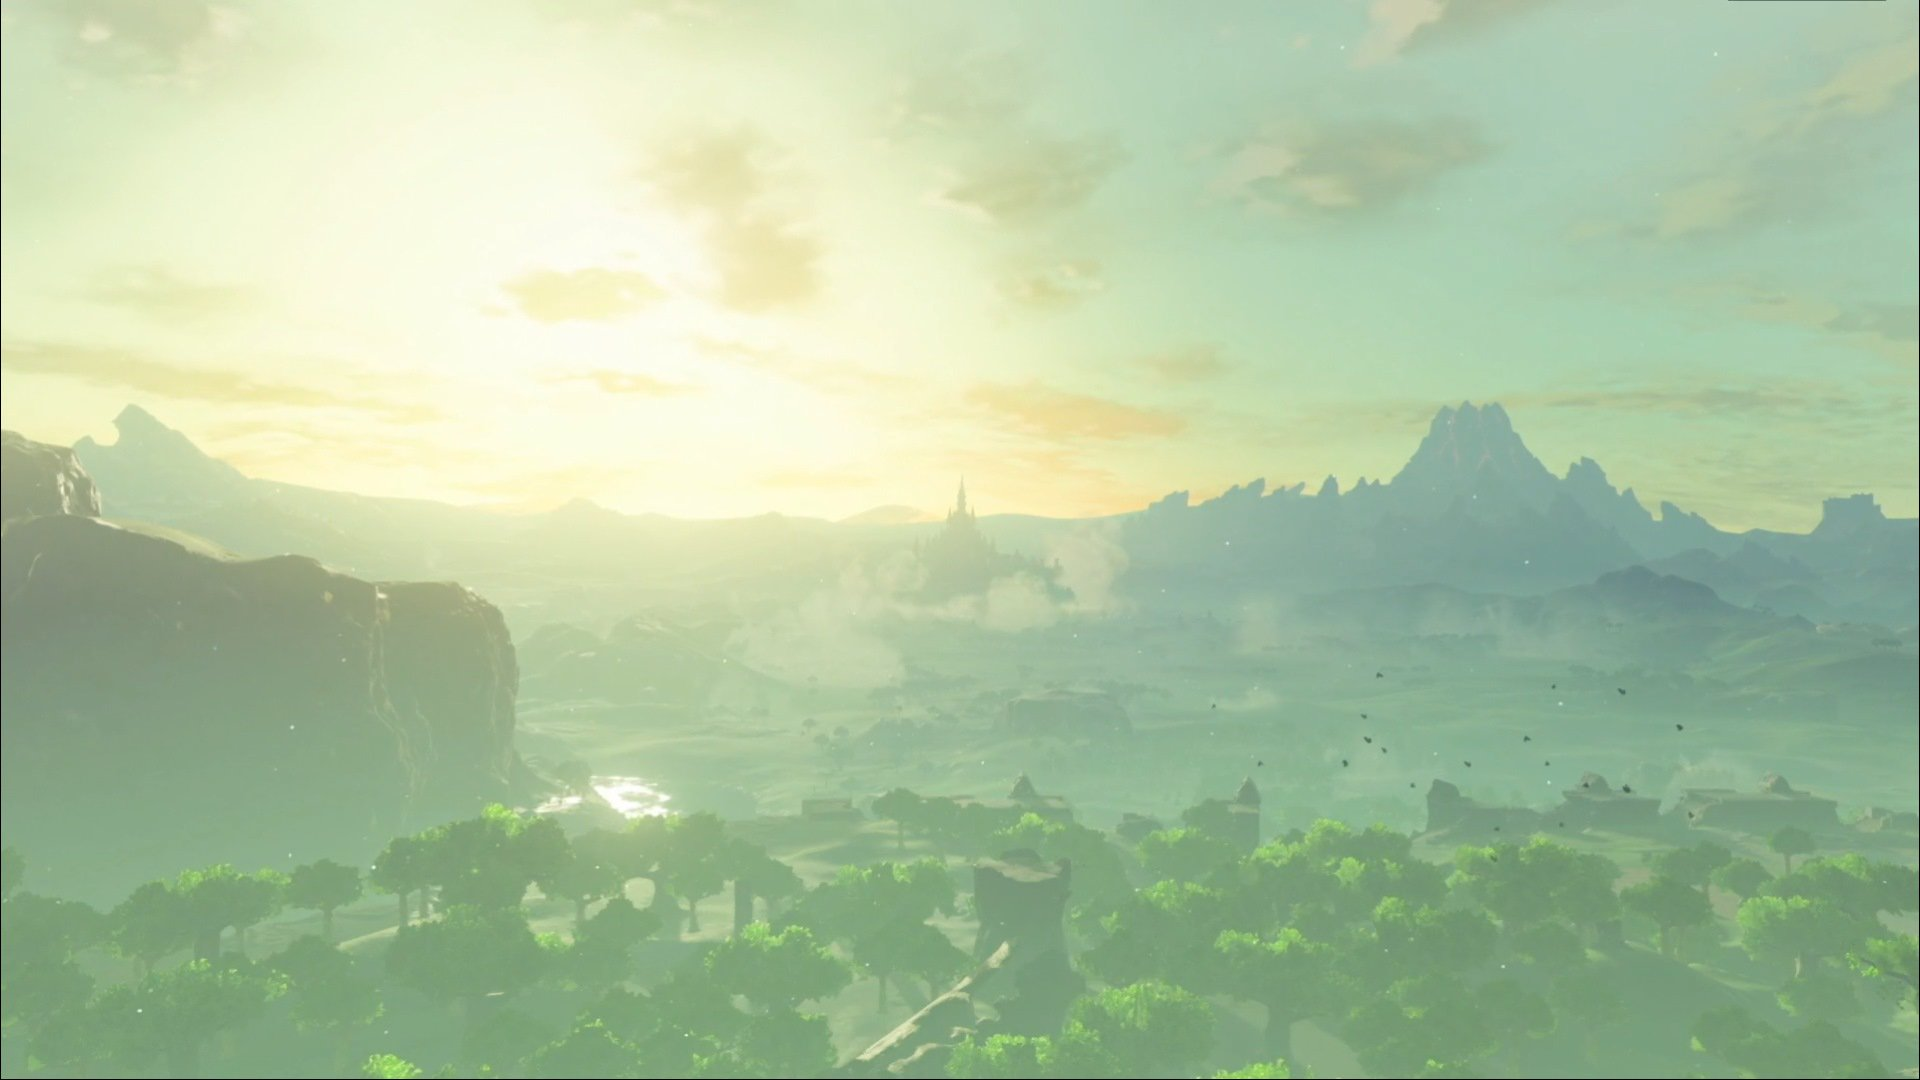 Breath of the Wild sequel setting